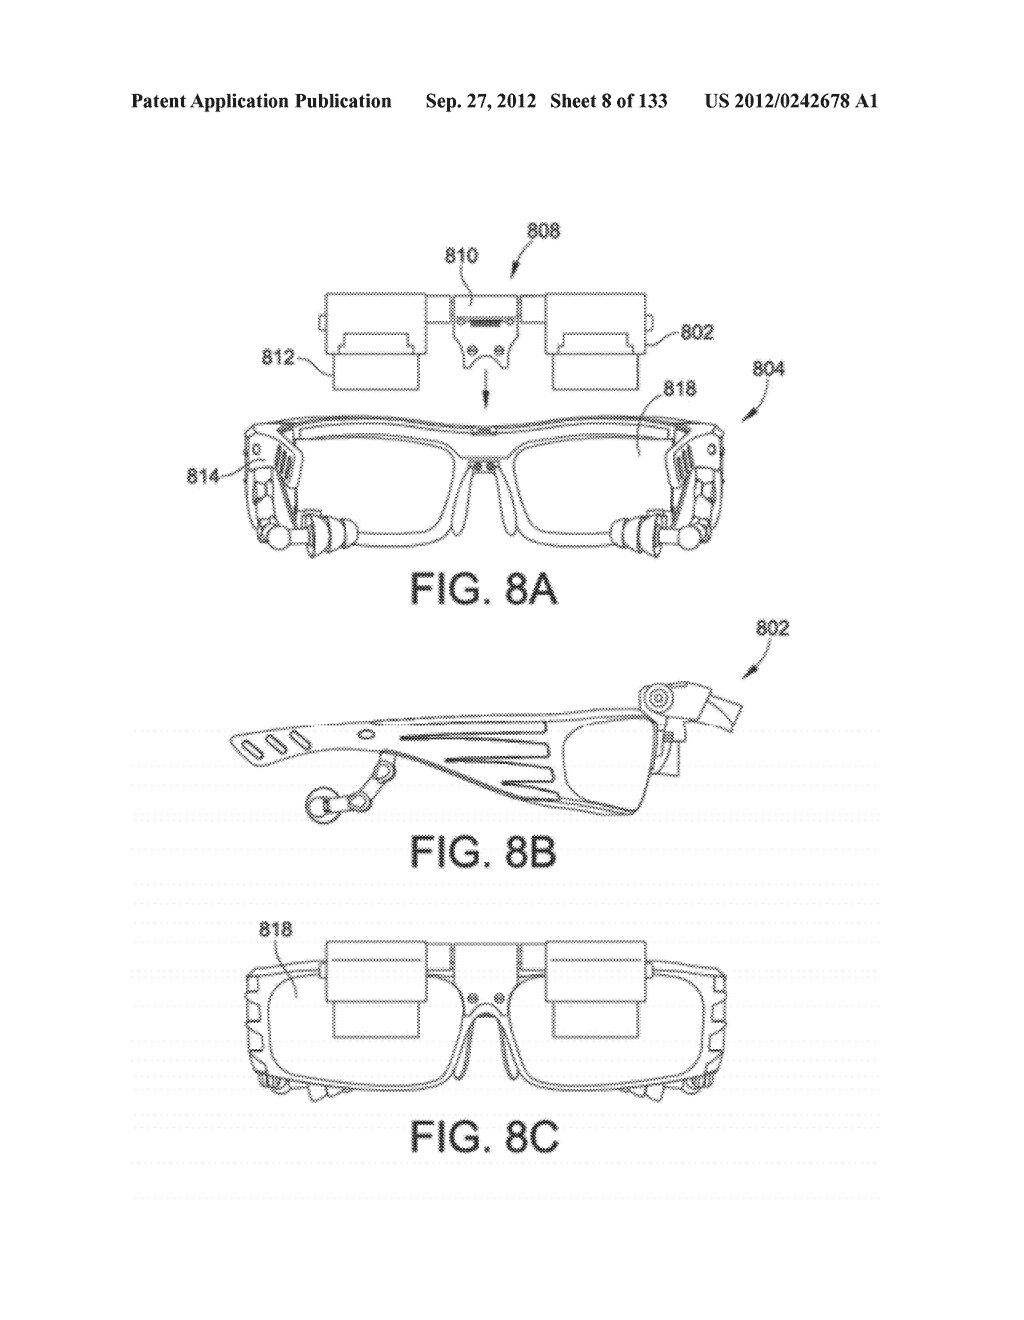 SEE-THROUGH NEAR-EYE DISPLAY GLASSES INCLUDING AN AUTO-BRIGHTNESS CONTROL     FOR THE DISPLAY BRIGHTNESS BASED ON THE BRIGHTNESS IN THE ENVIRONMENT - diagram, schematic, and image 09